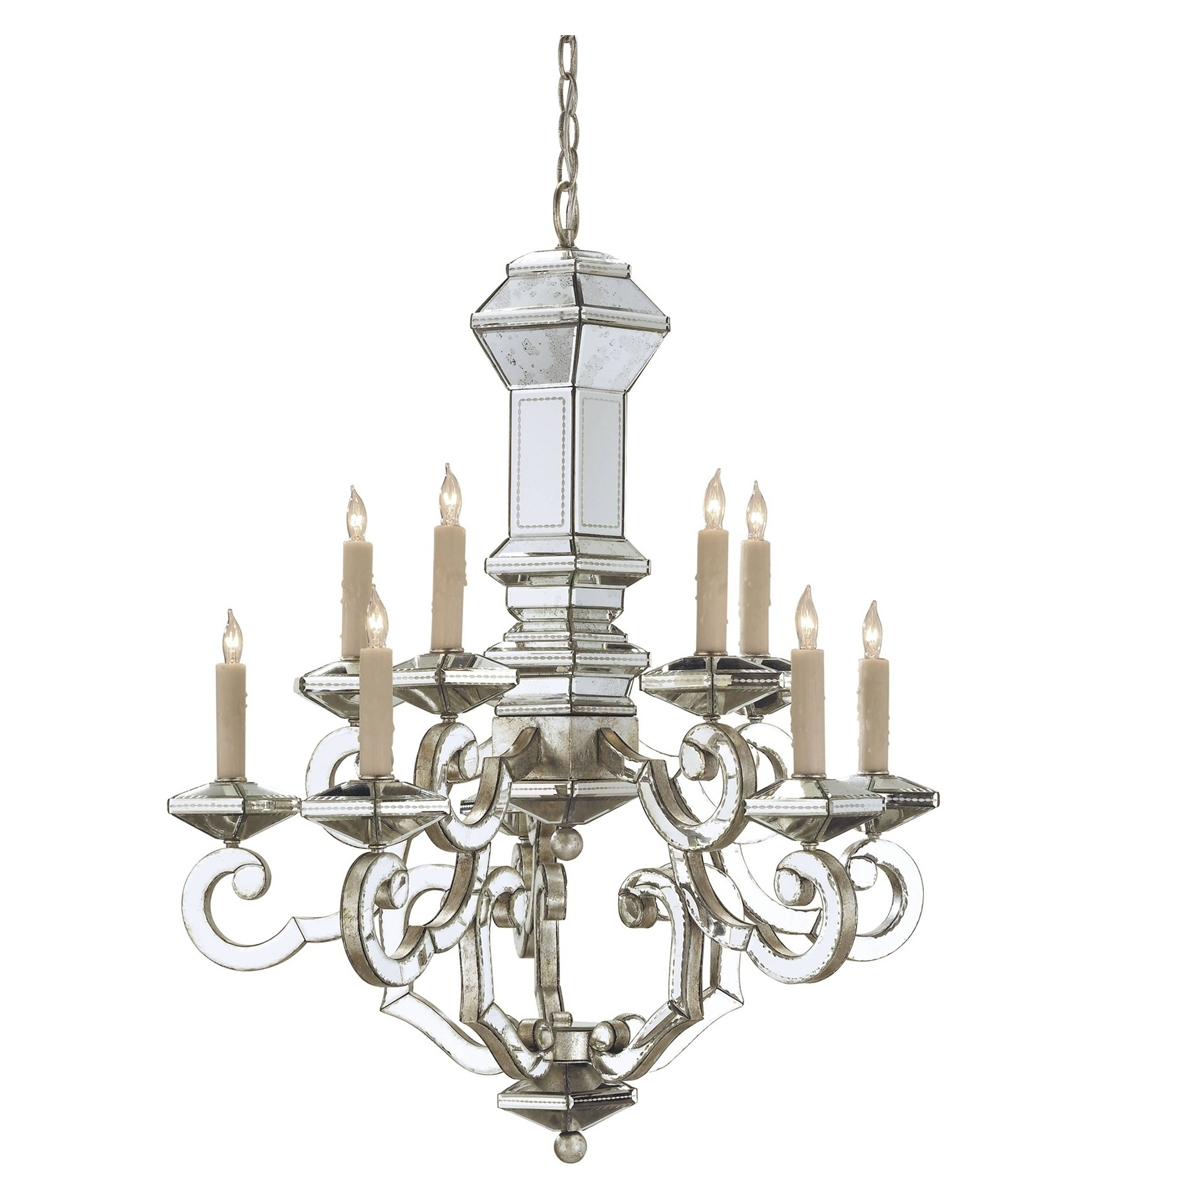 Featured Image of Mirrored Chandelier